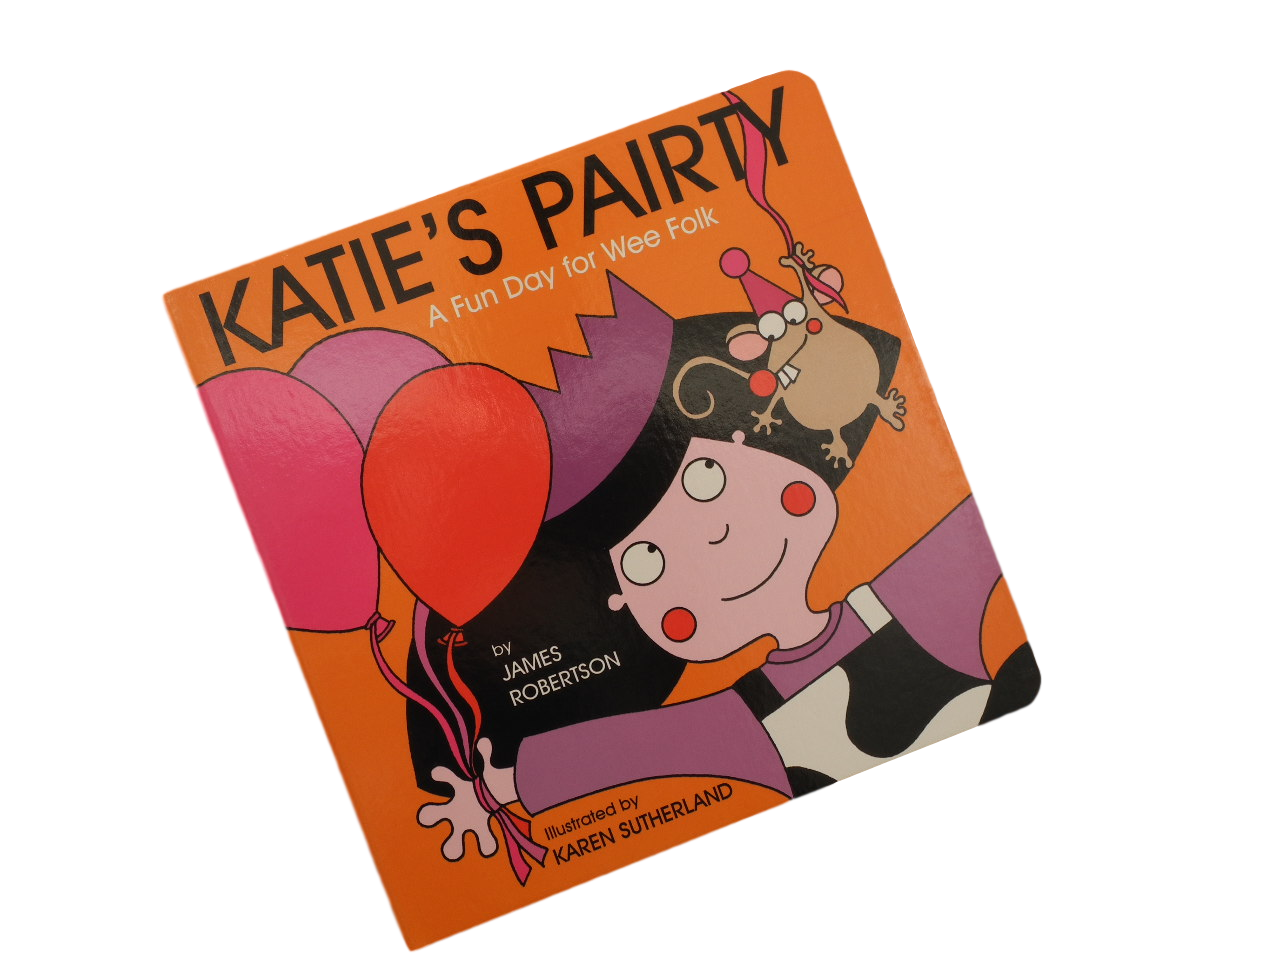 scottish book for children katies party pairty scots language james robertson matthew fitt